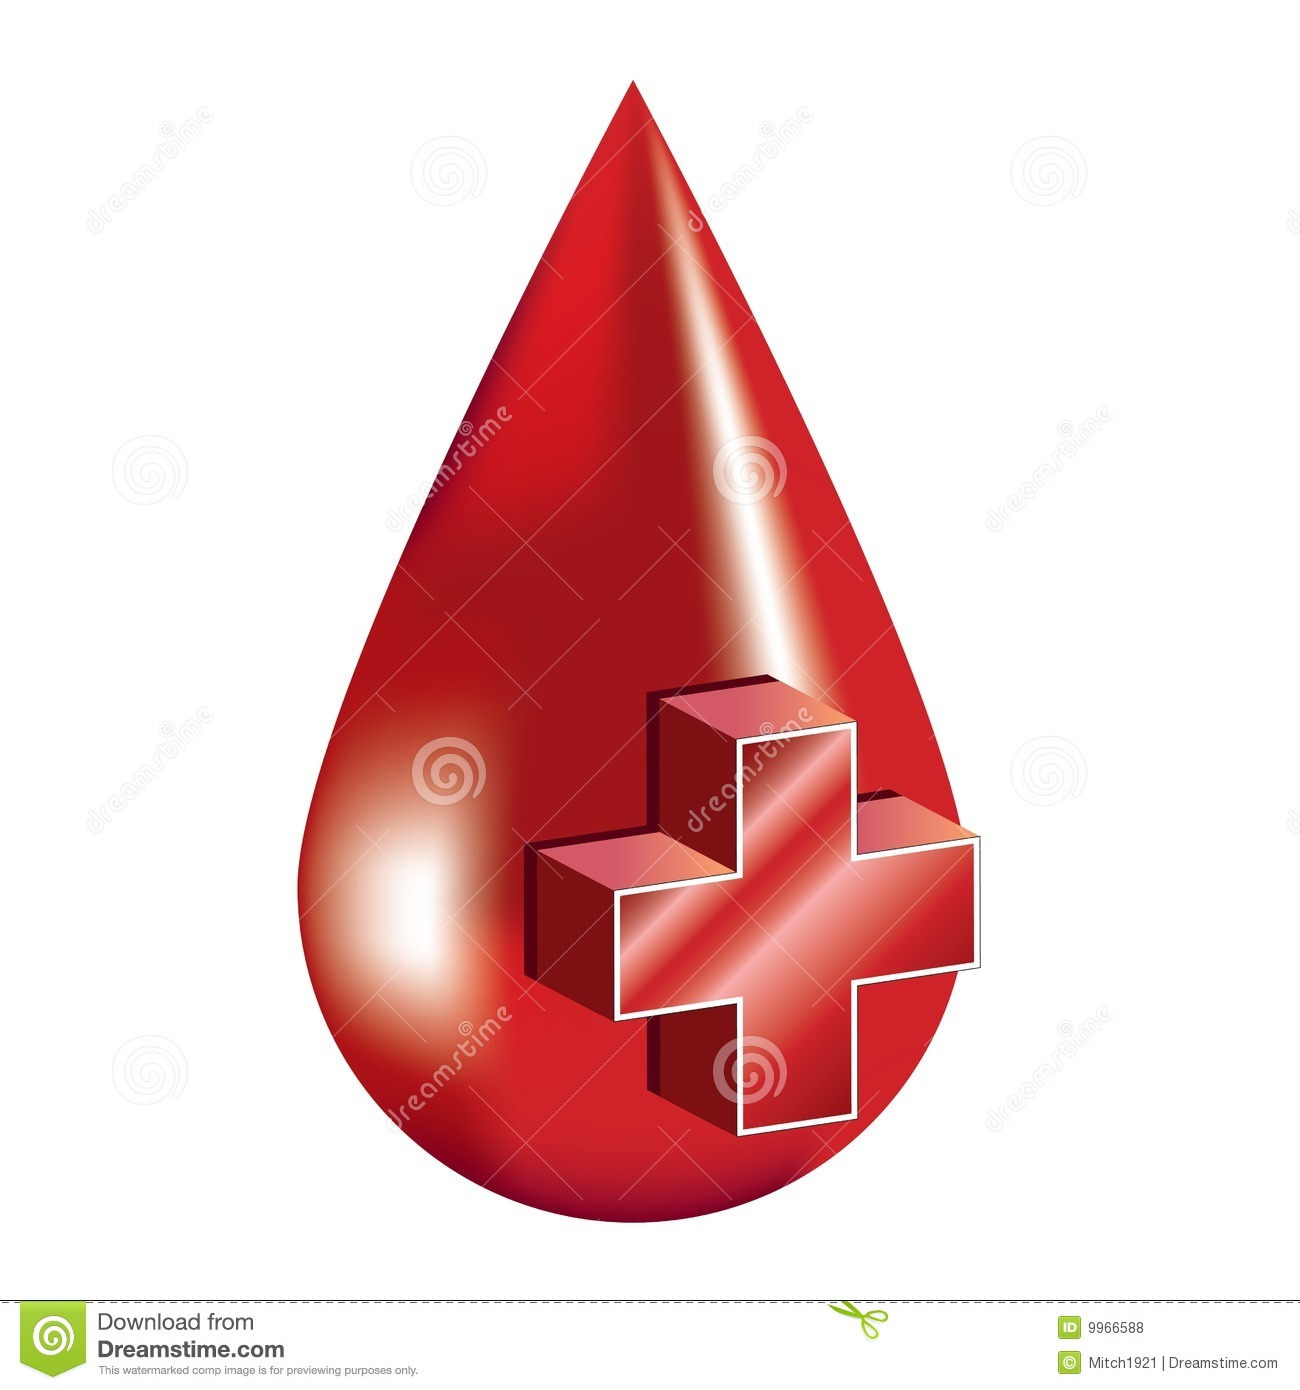 Blood donation stock illustration. Image of cross, first ...